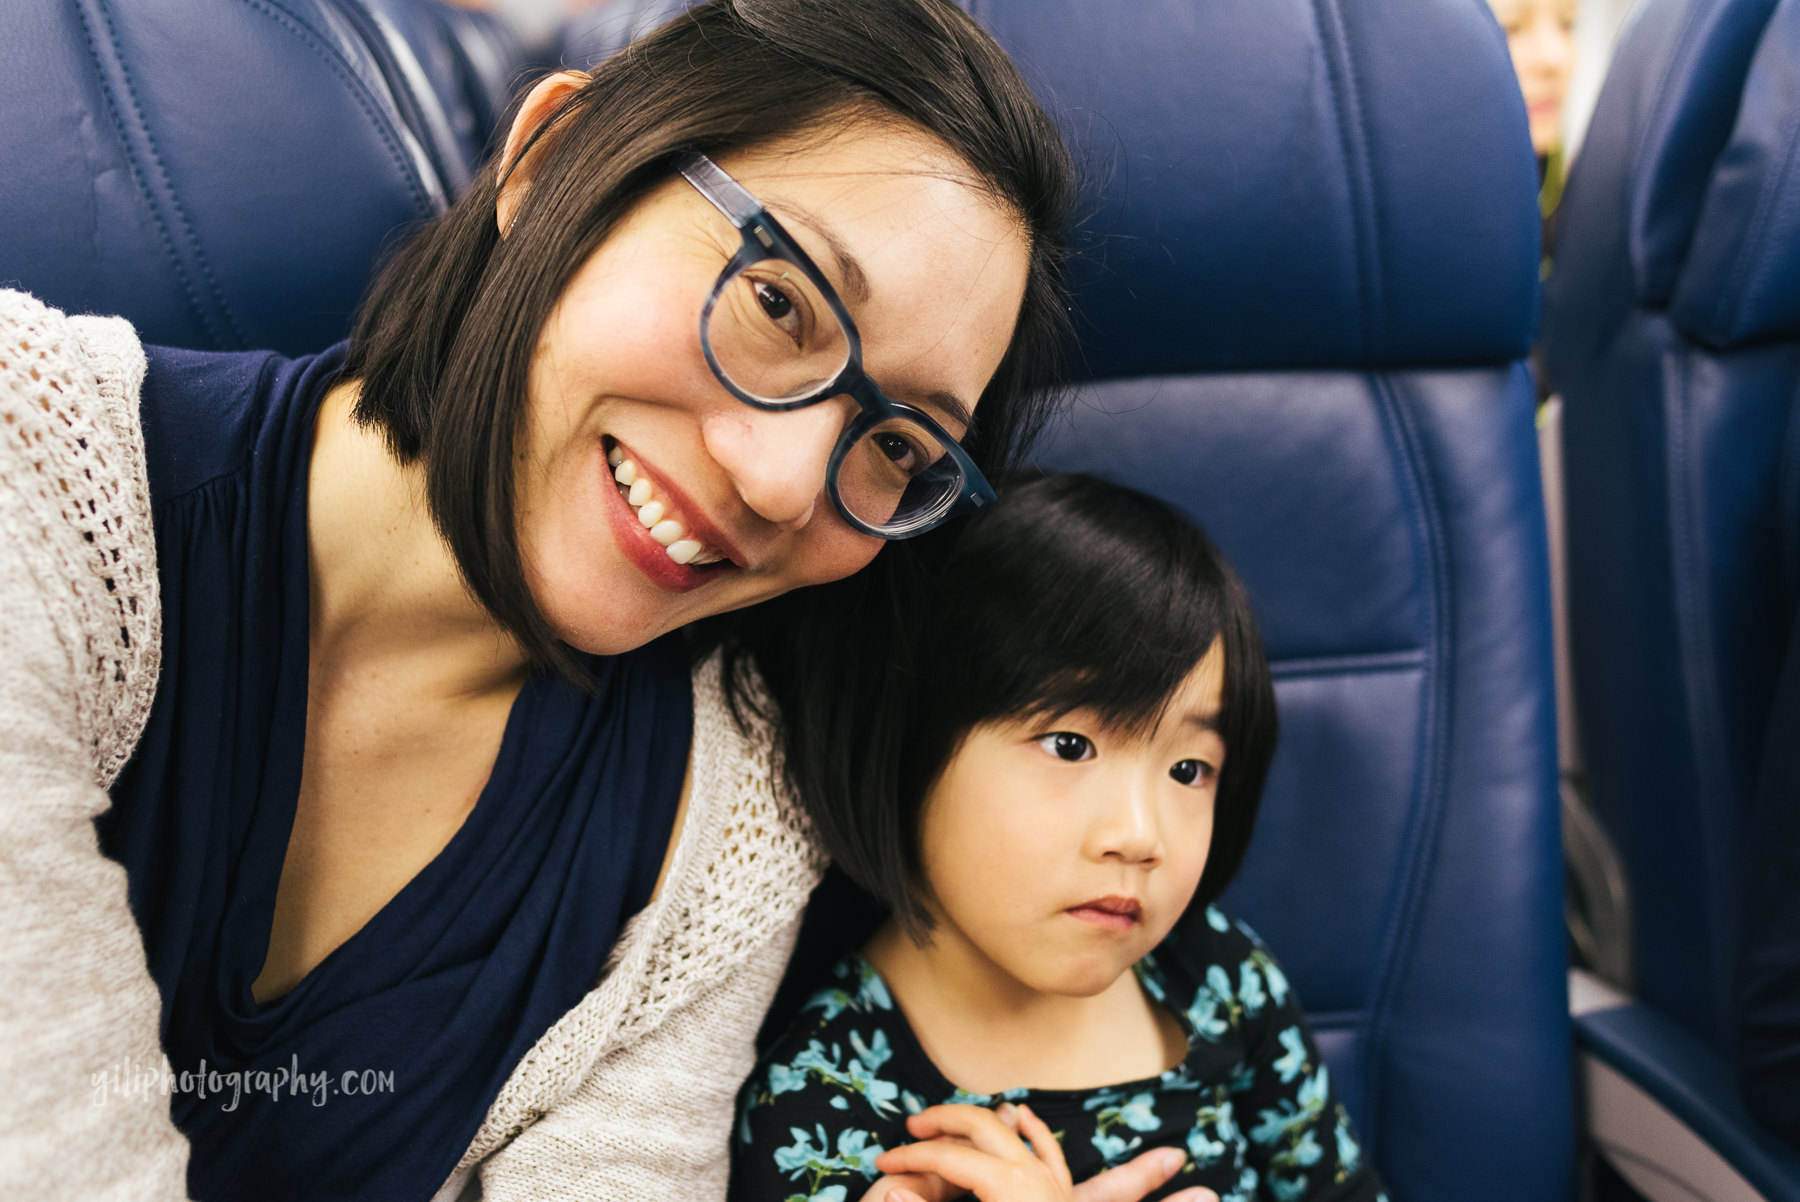 mom and daughter on airplane together